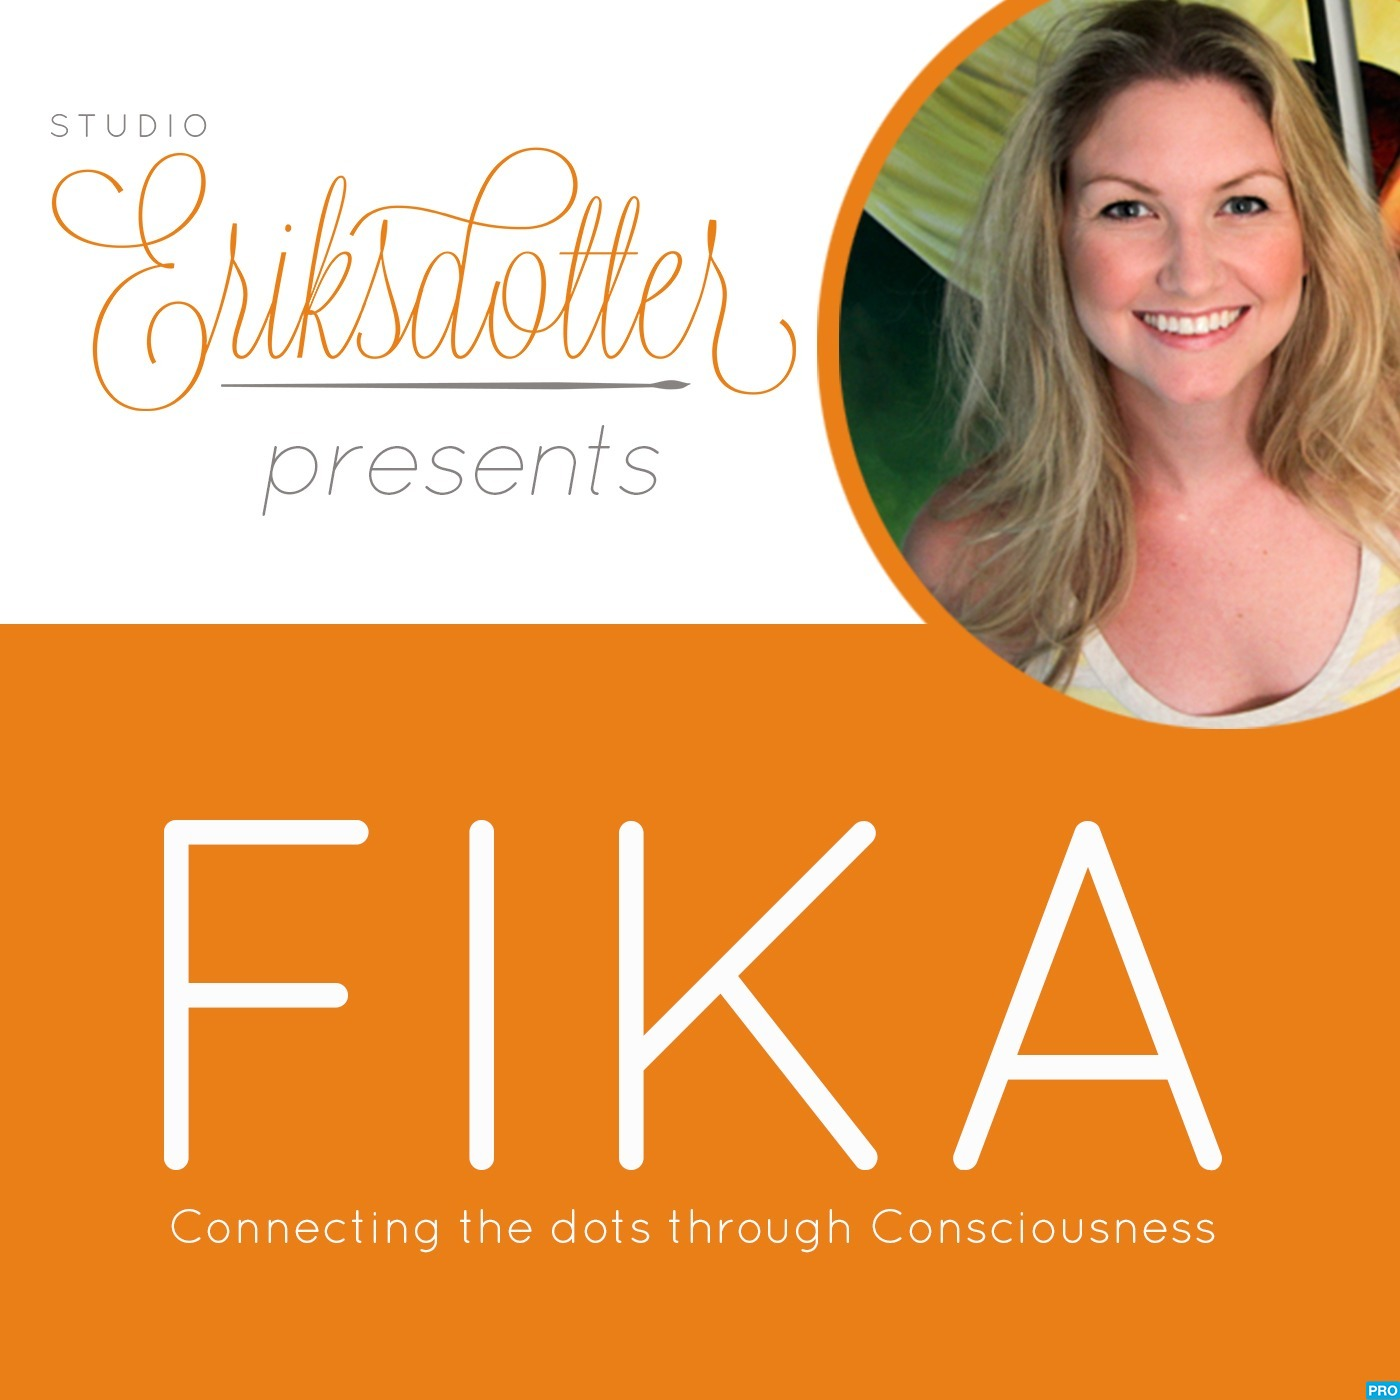 Studio Eriksdotter presents FIKA